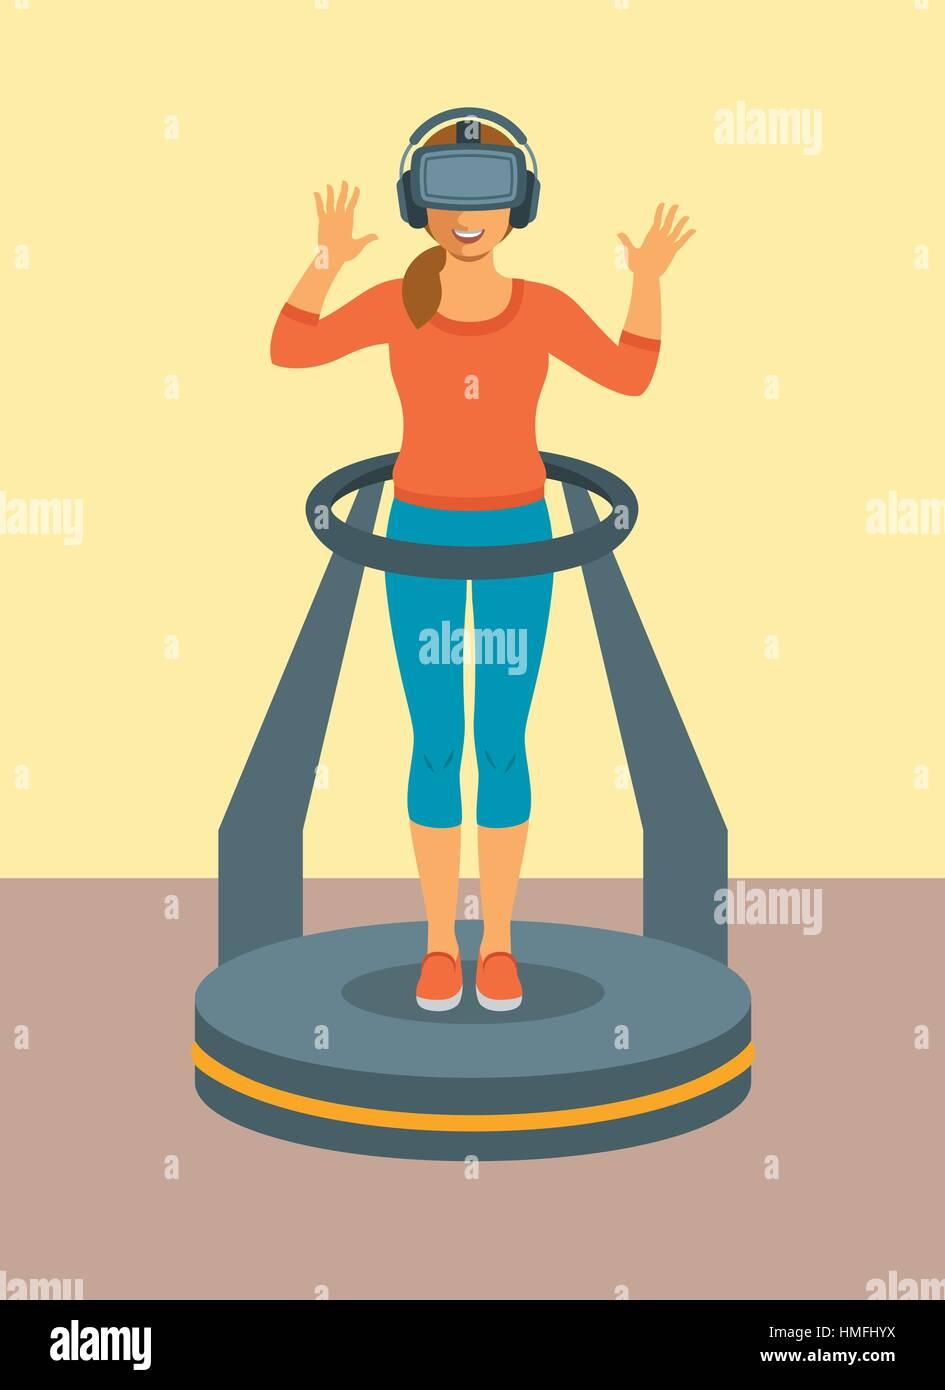 Young woman in virtual reality glasses standing on game controller platform simulator. Flat vector illustration. - Stock Image